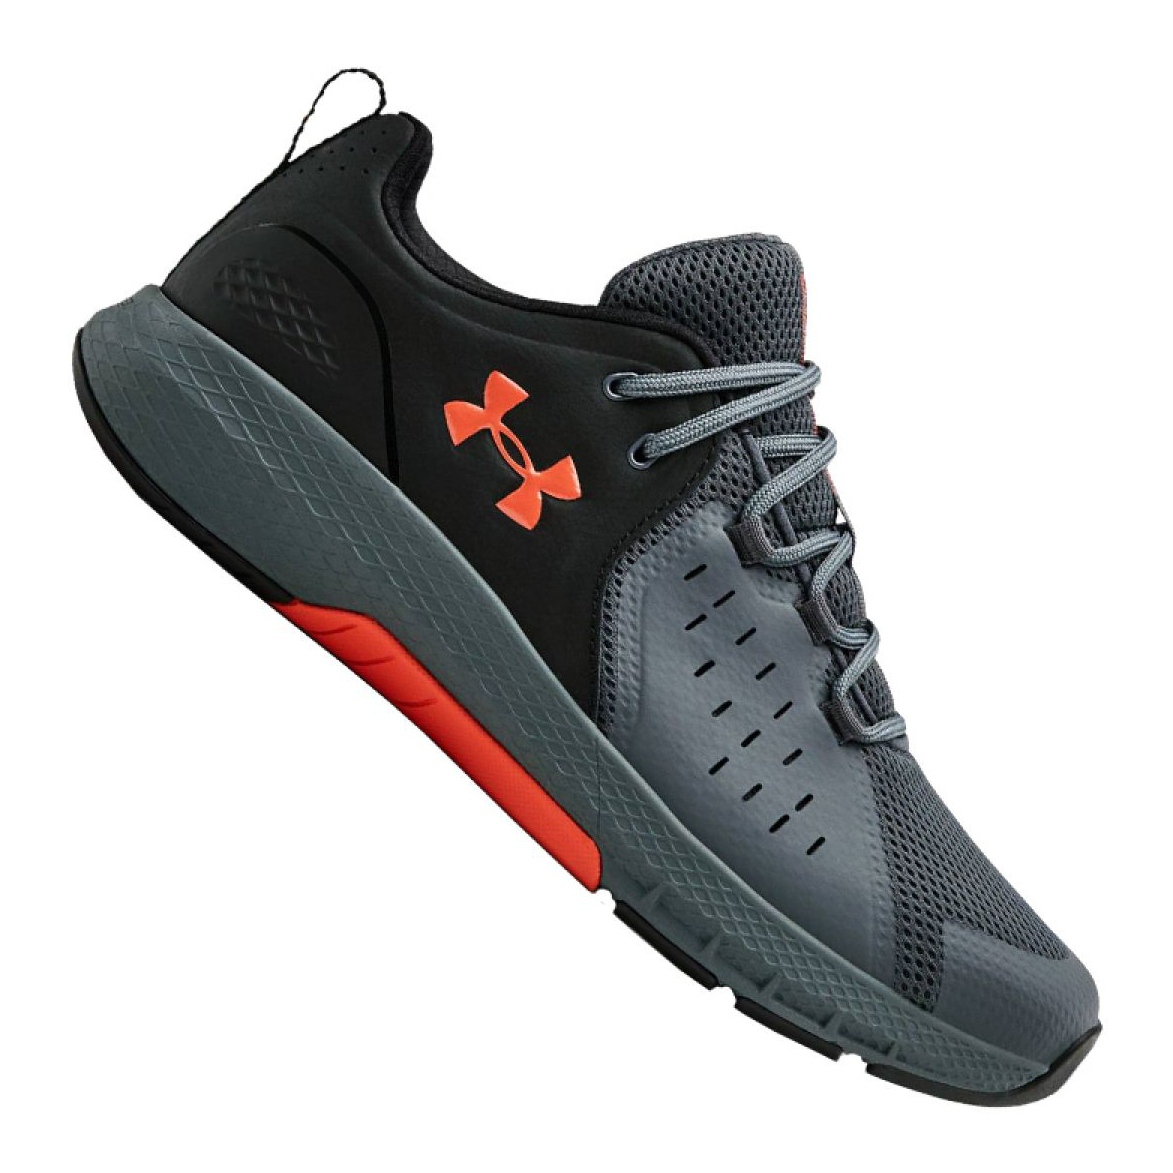 Details about Under Armour Charged commit TR 2.0 M 3022027 003 Training Shoes show original title